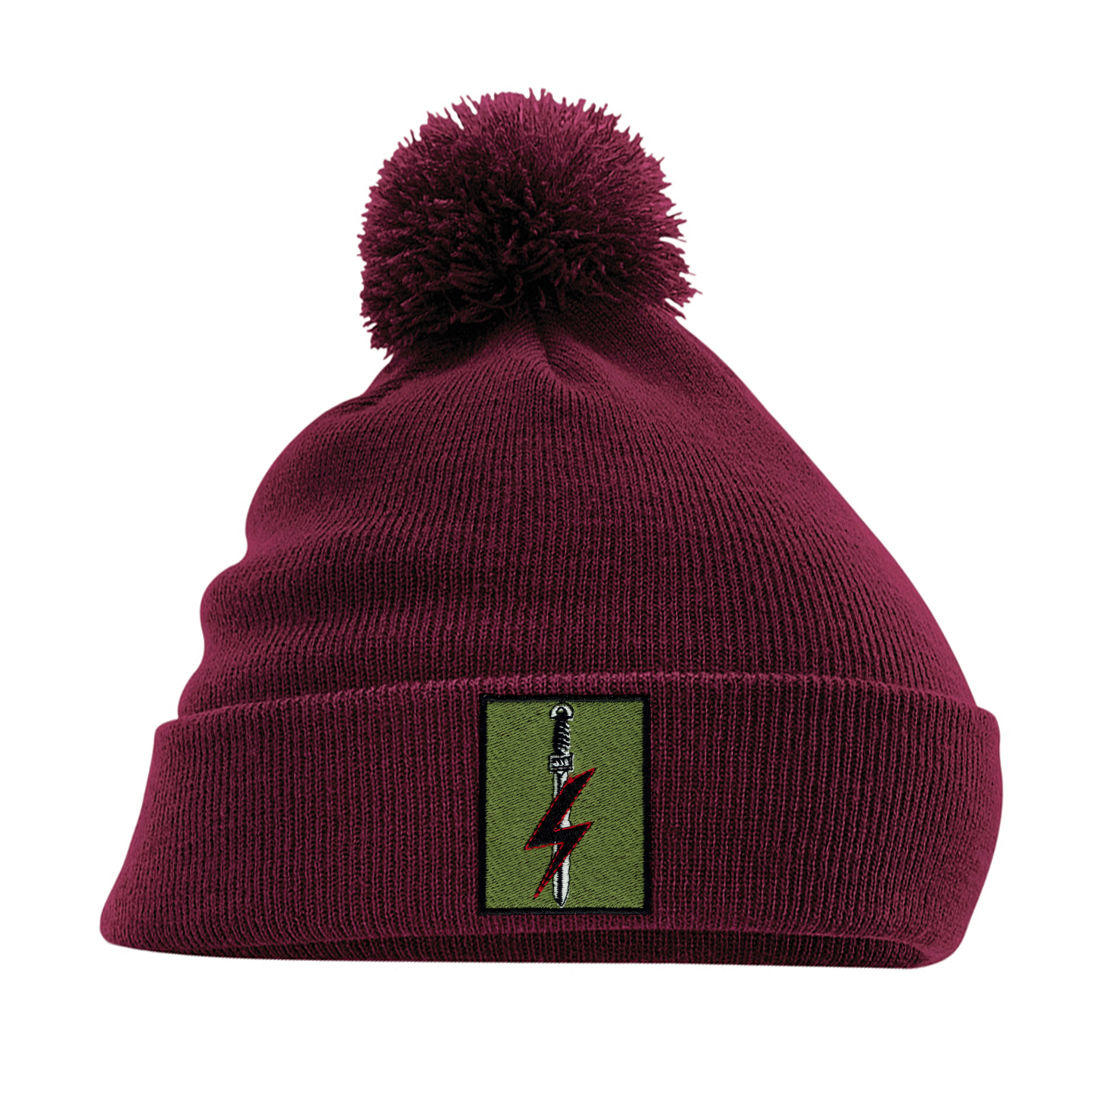 Turn-Up Bobble Beanie Hat - SFSG - The Airborne Shop 174861b67ac